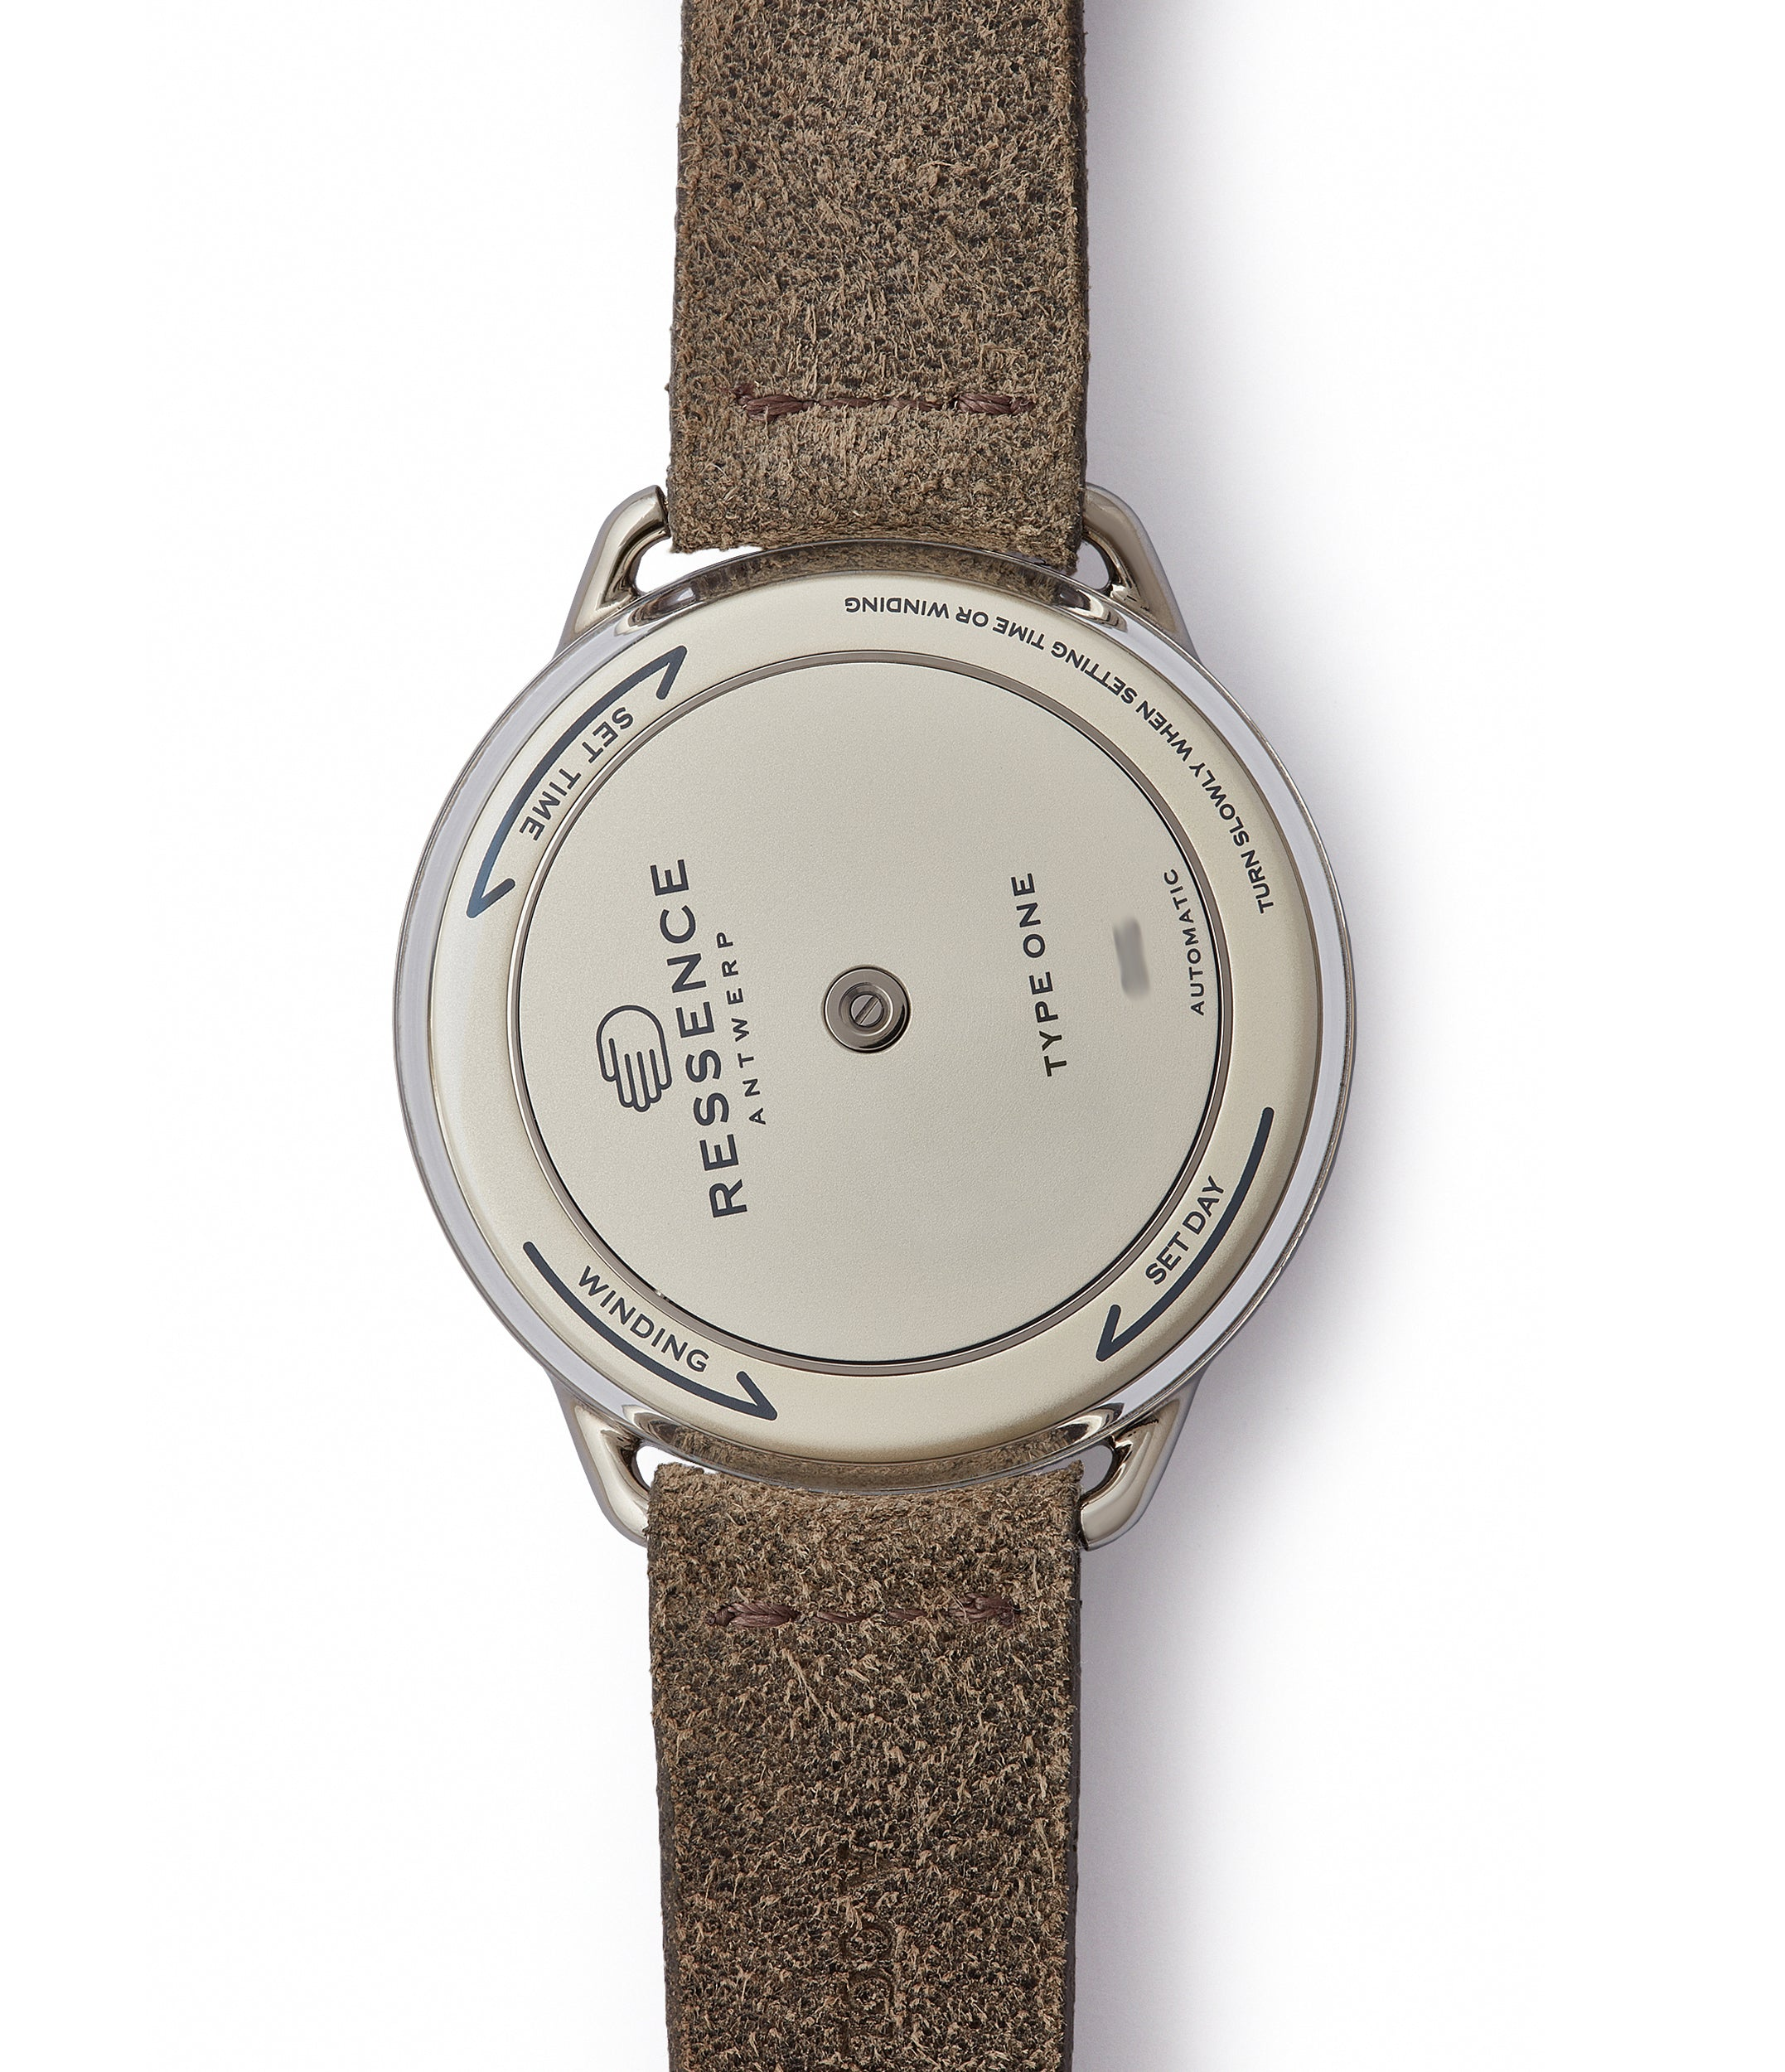 Ressence Type 1 Mechanical 42mm Titanium and Ostrich Watch for sale online at A Collected Man